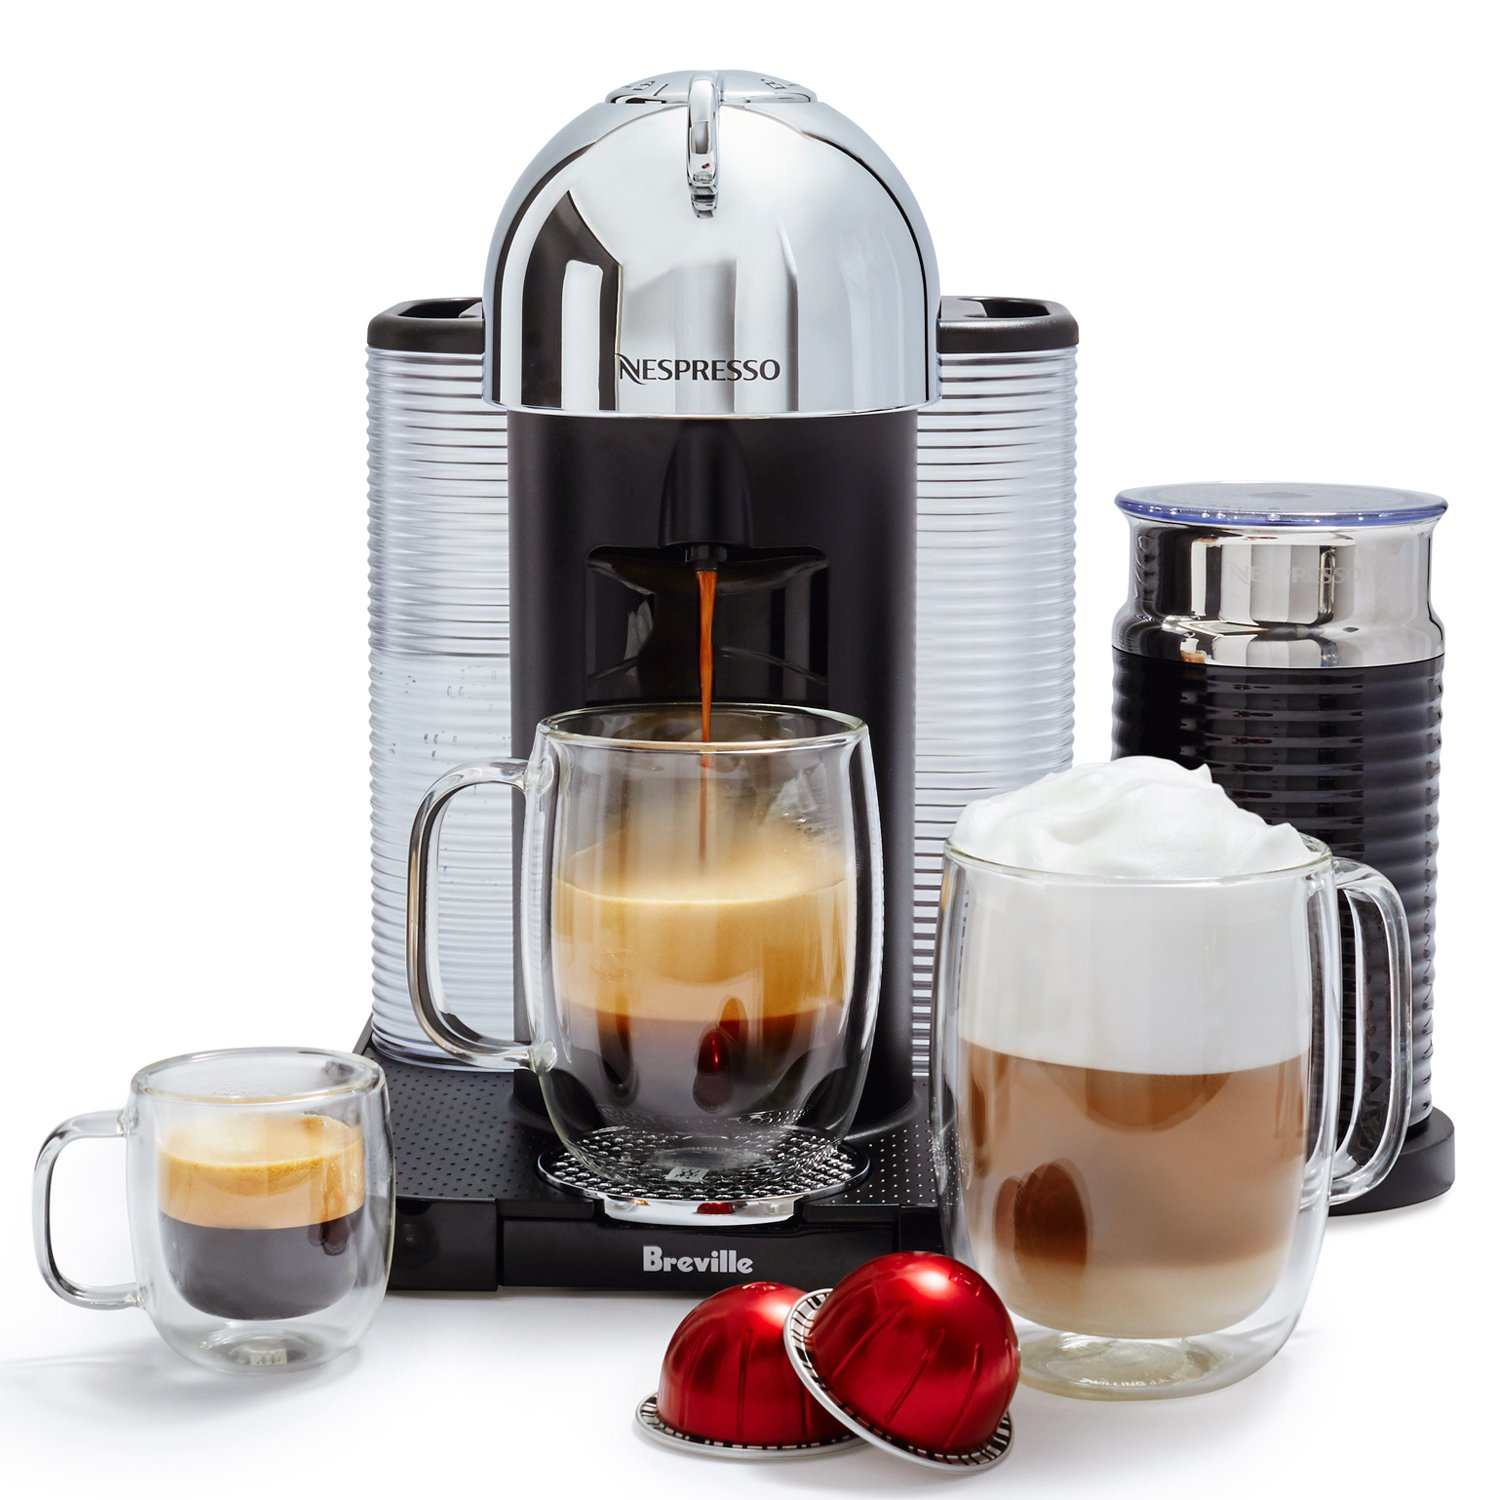 Nespresso Vertuo Coffee and Espresso Machine Bundle with Aeroccino Milk Frother by Breville, Chrome by Breville